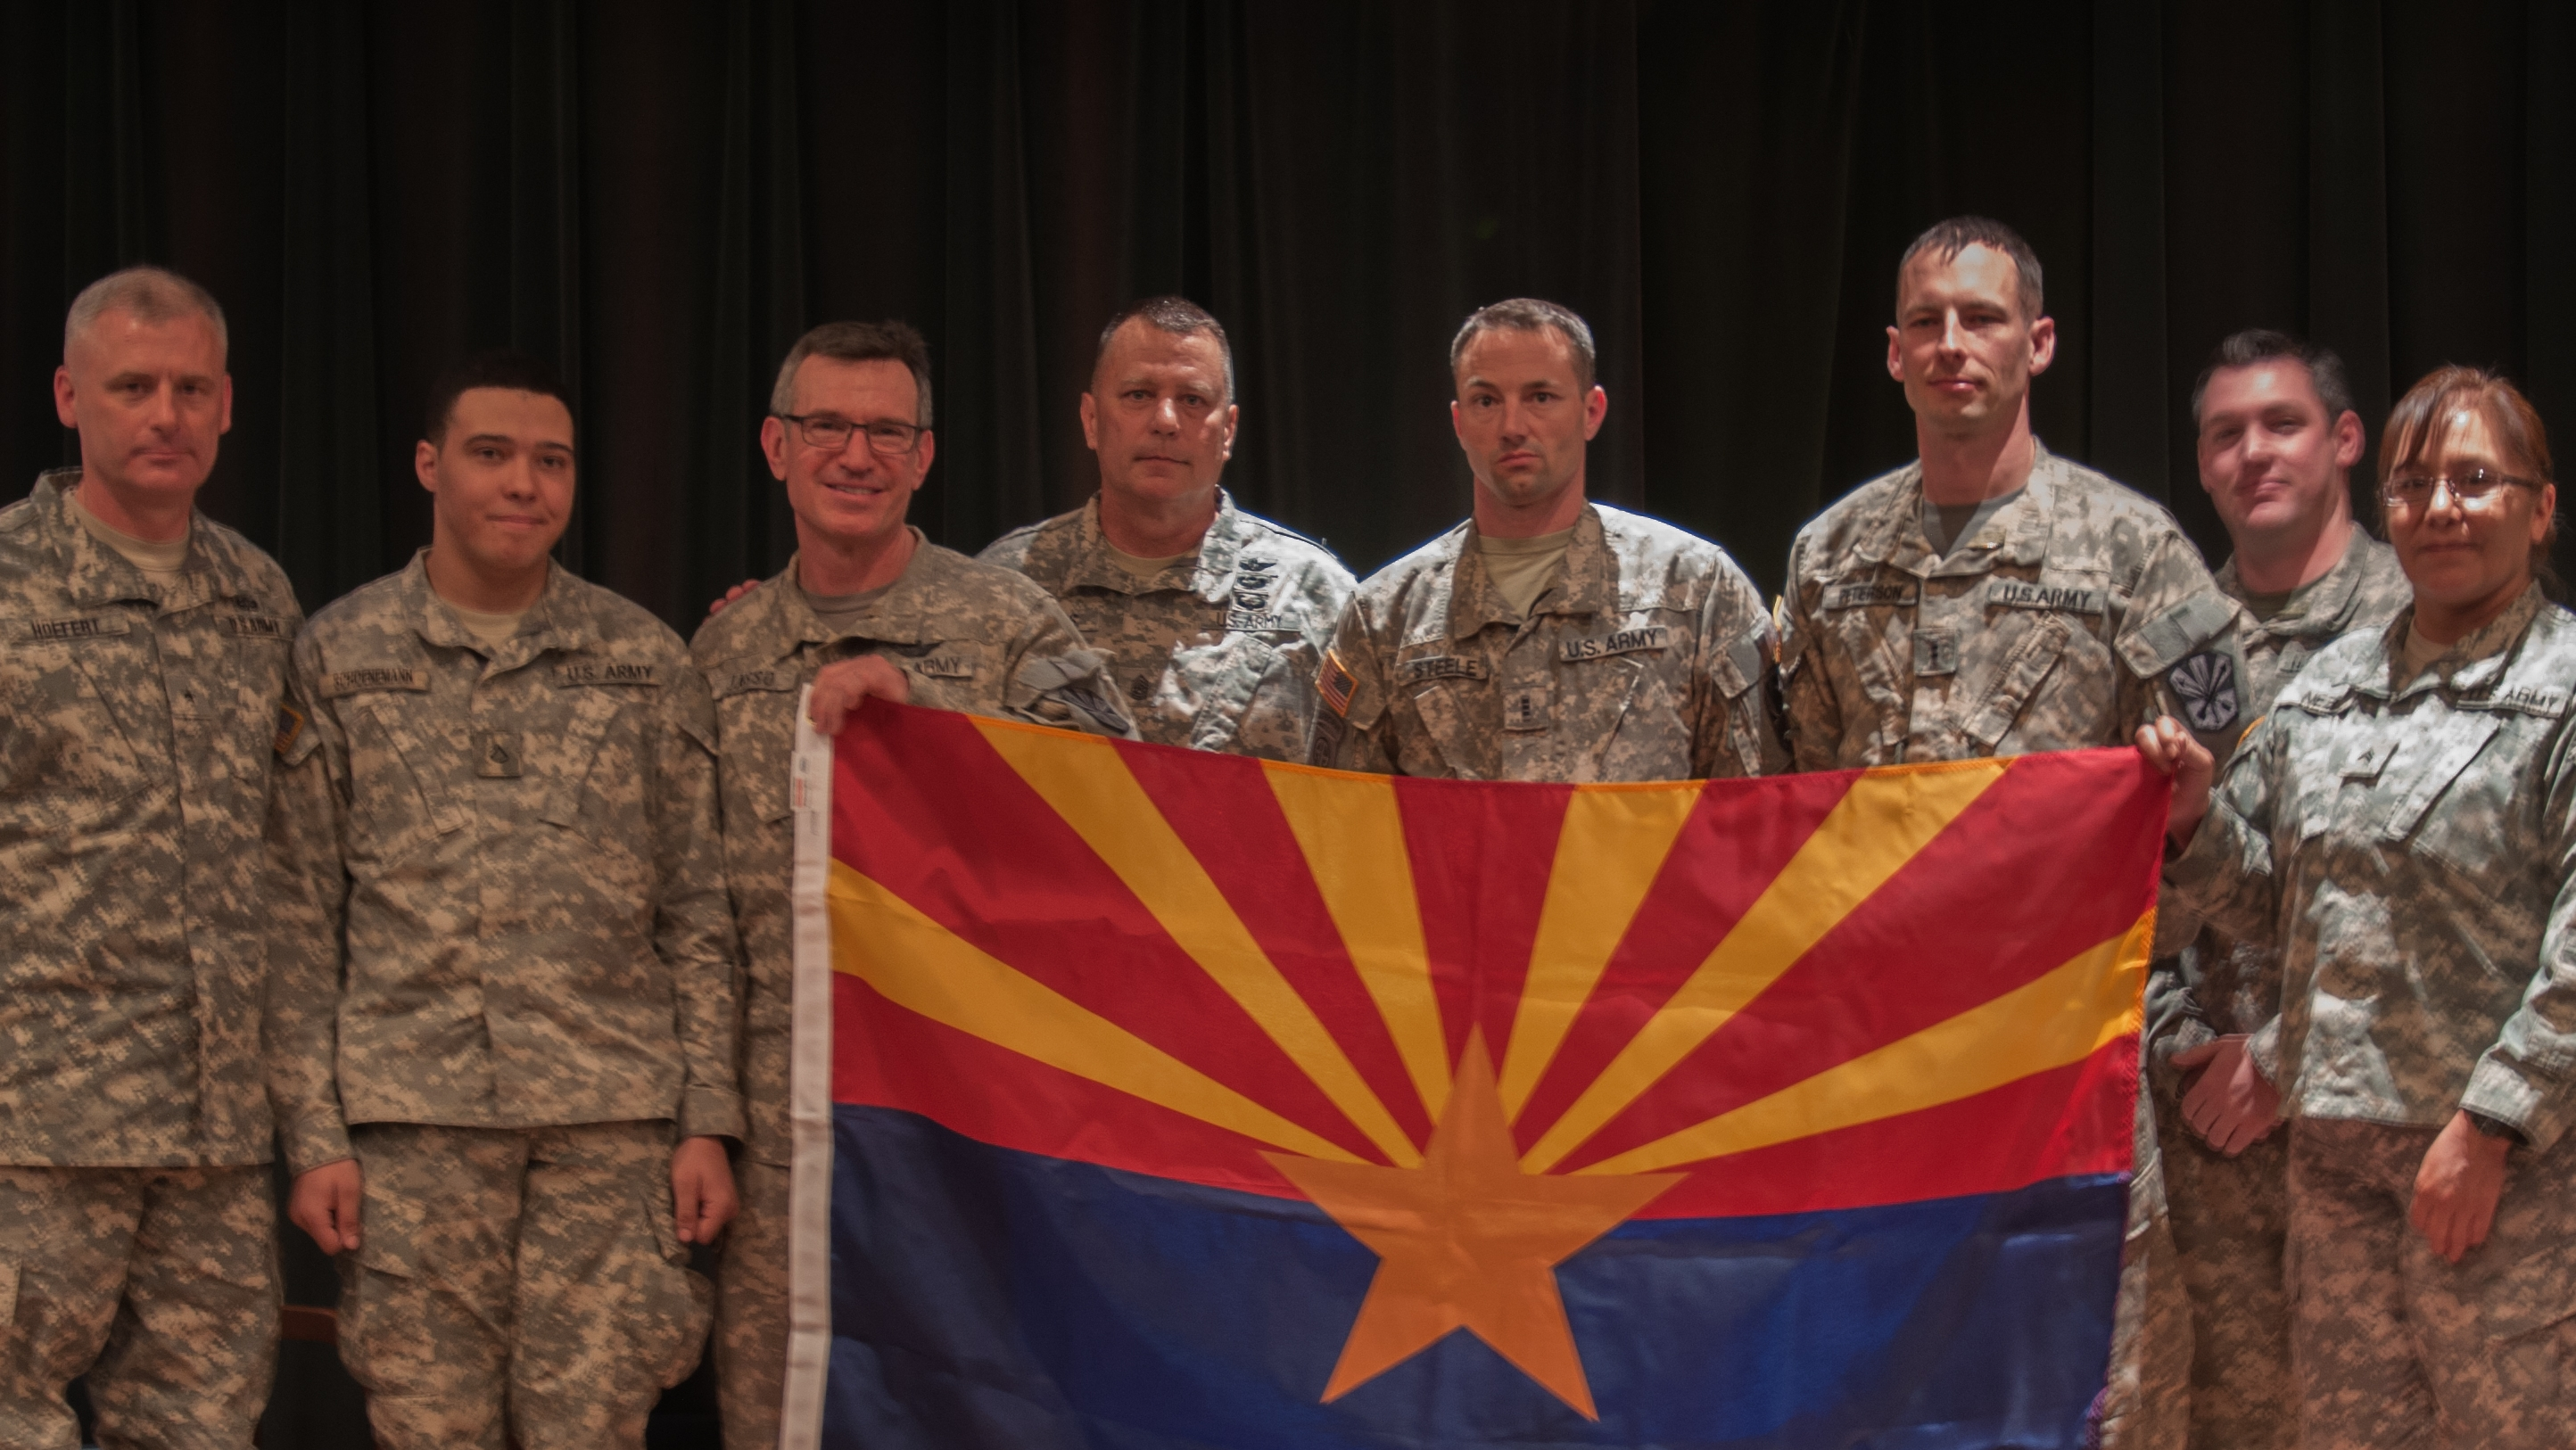 Soldiers from the Arizona Army National Guard's Det. 31 Operational Support Airlift Agency holding an Arizona state flag.